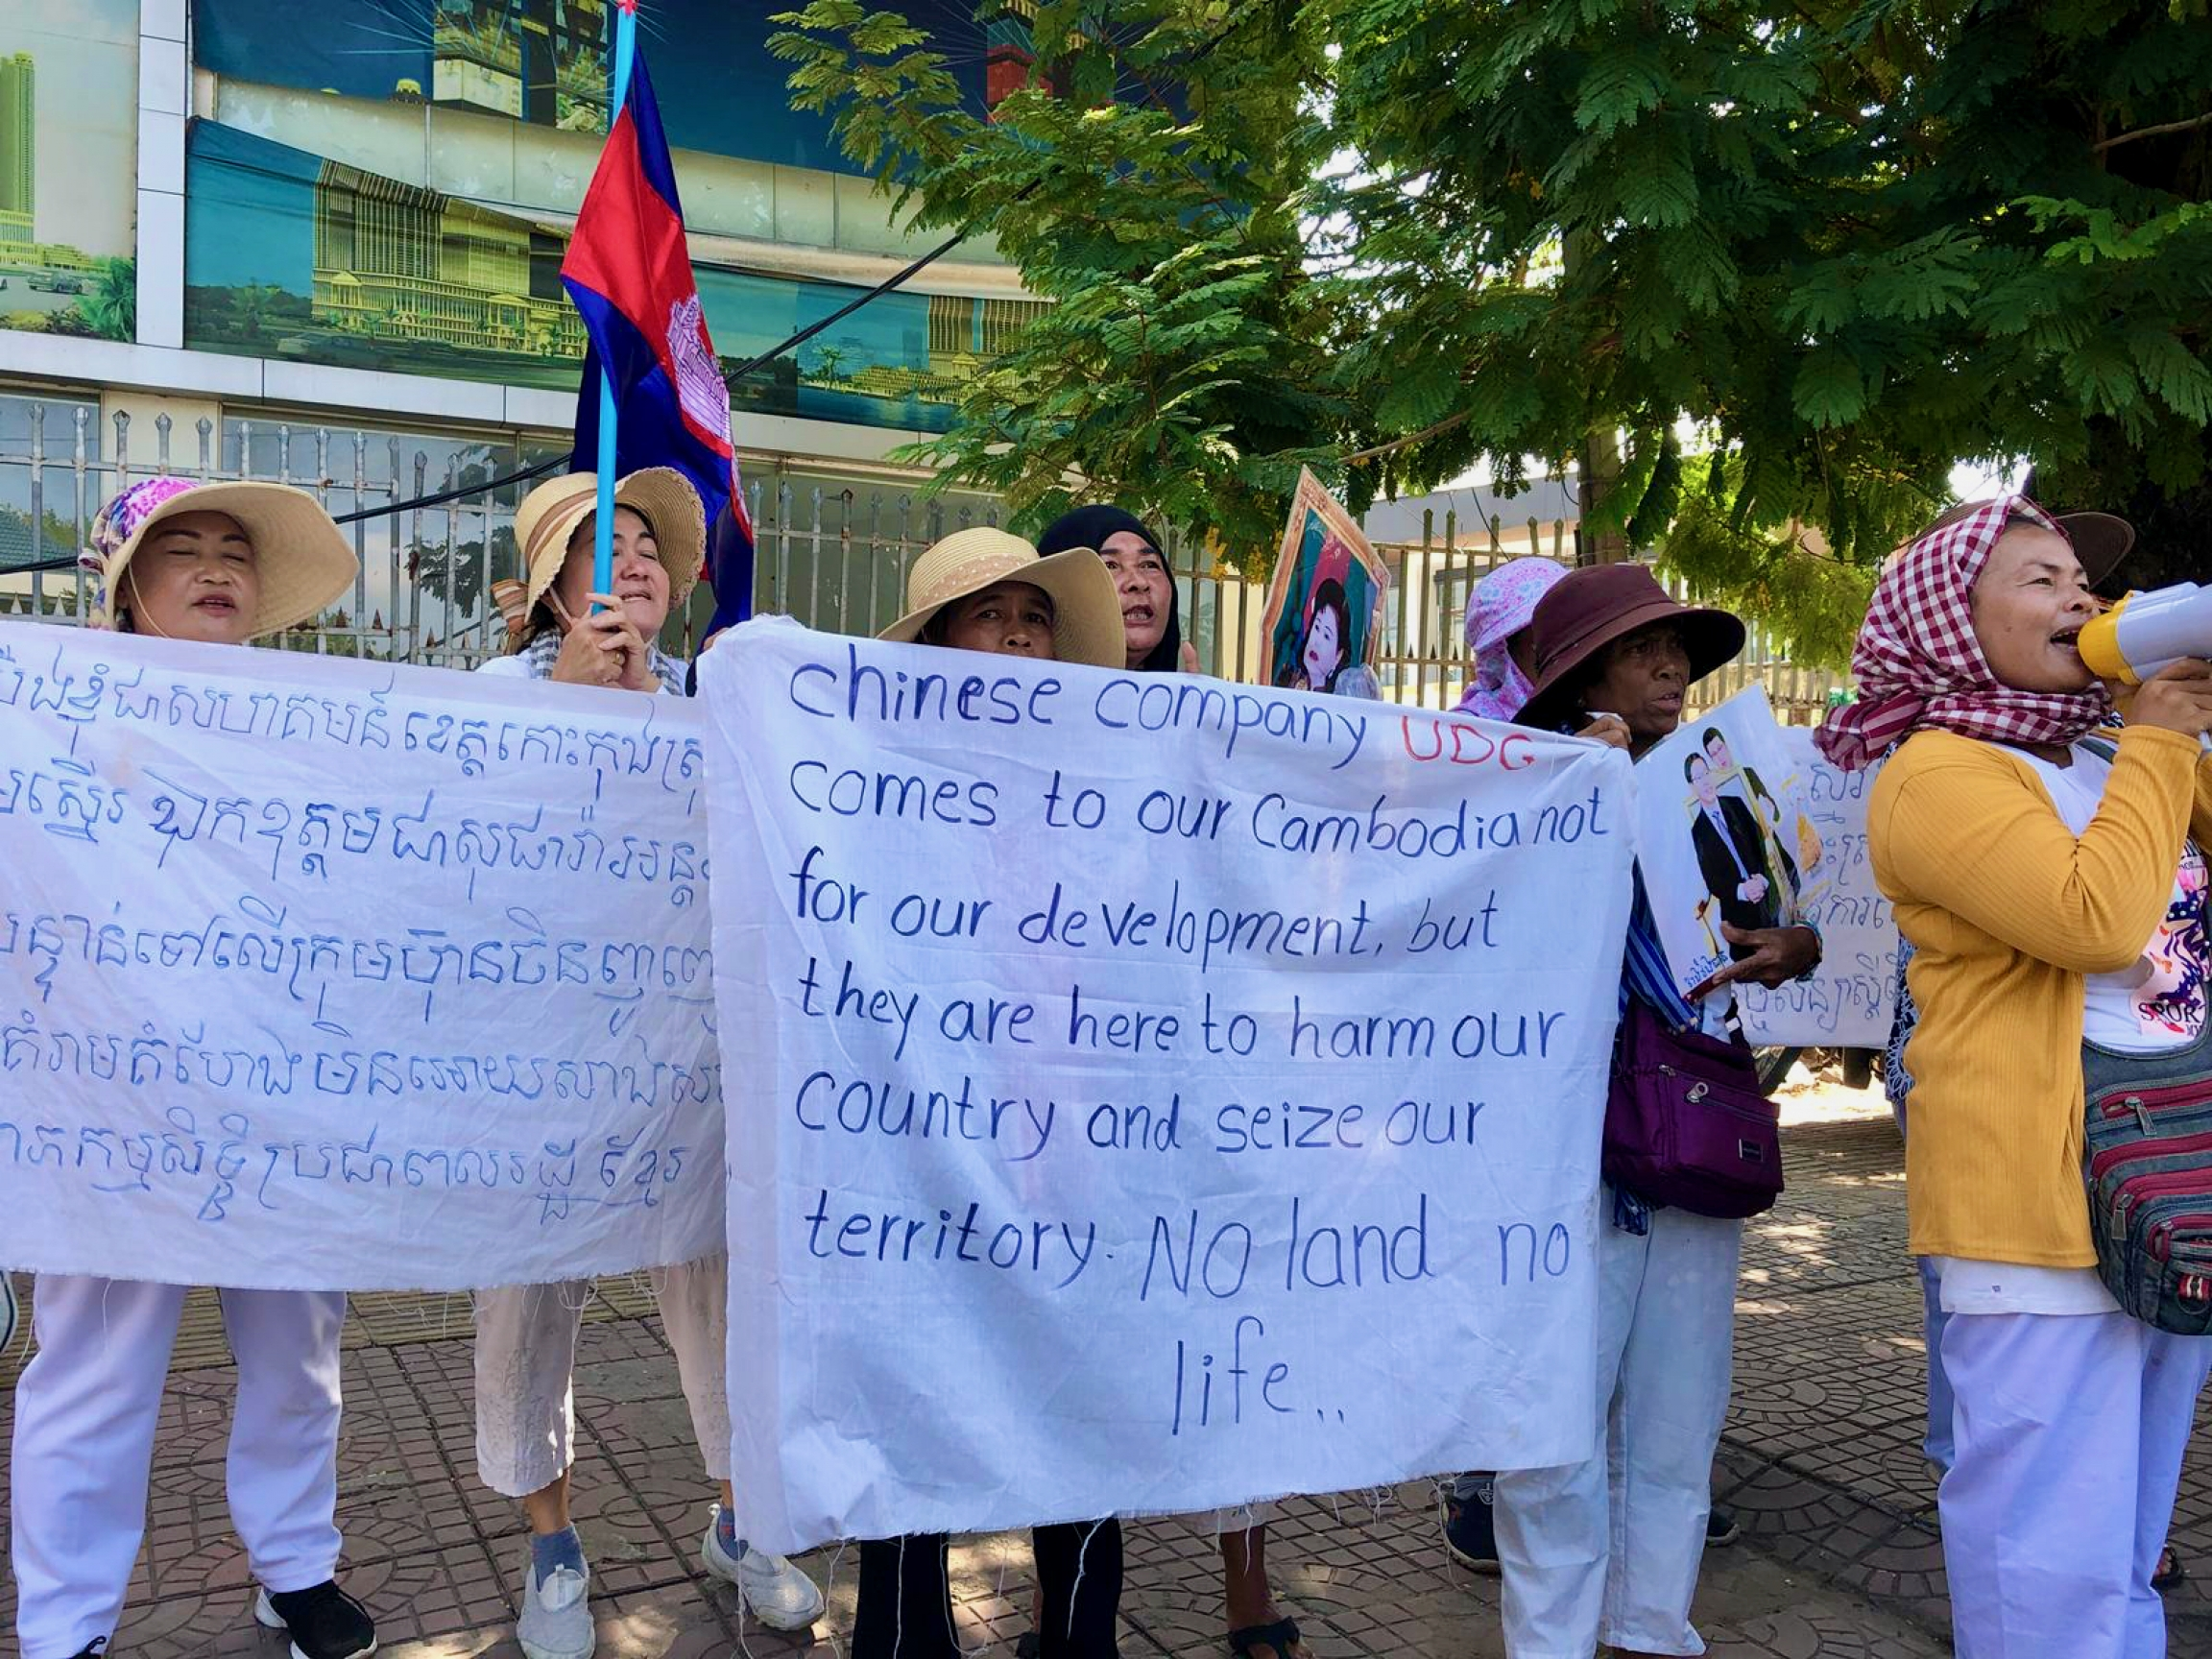 Cambodians kicked off their land in Koh Kong protest outside the Chinese embassy in Phnom Penh in August 2019.